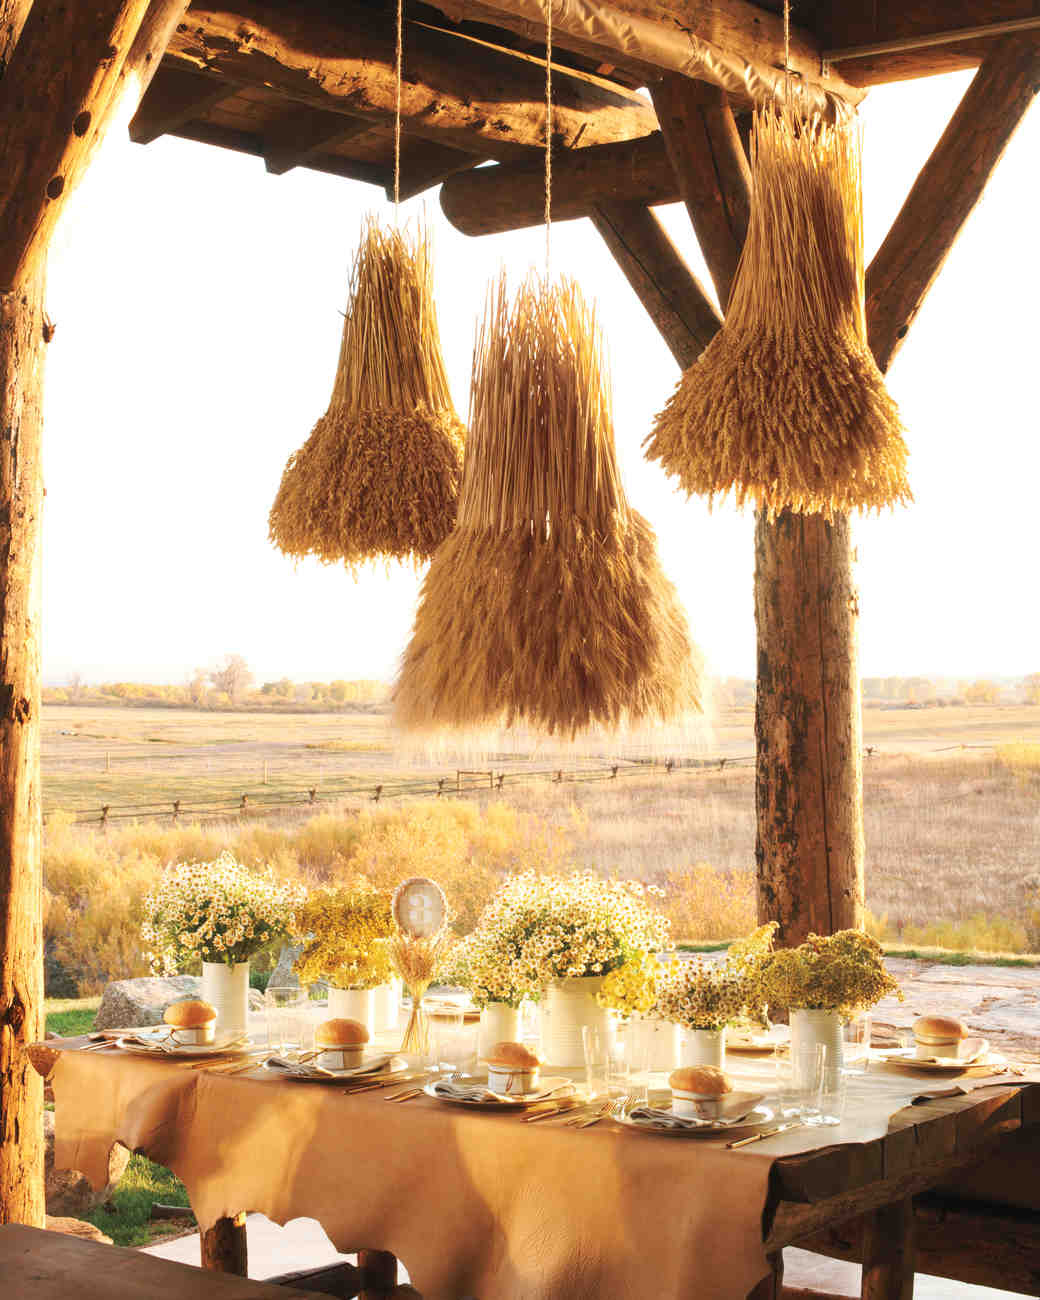 Rustic Country Wedding Ideas | Martha Stewart Weddings - photo#50